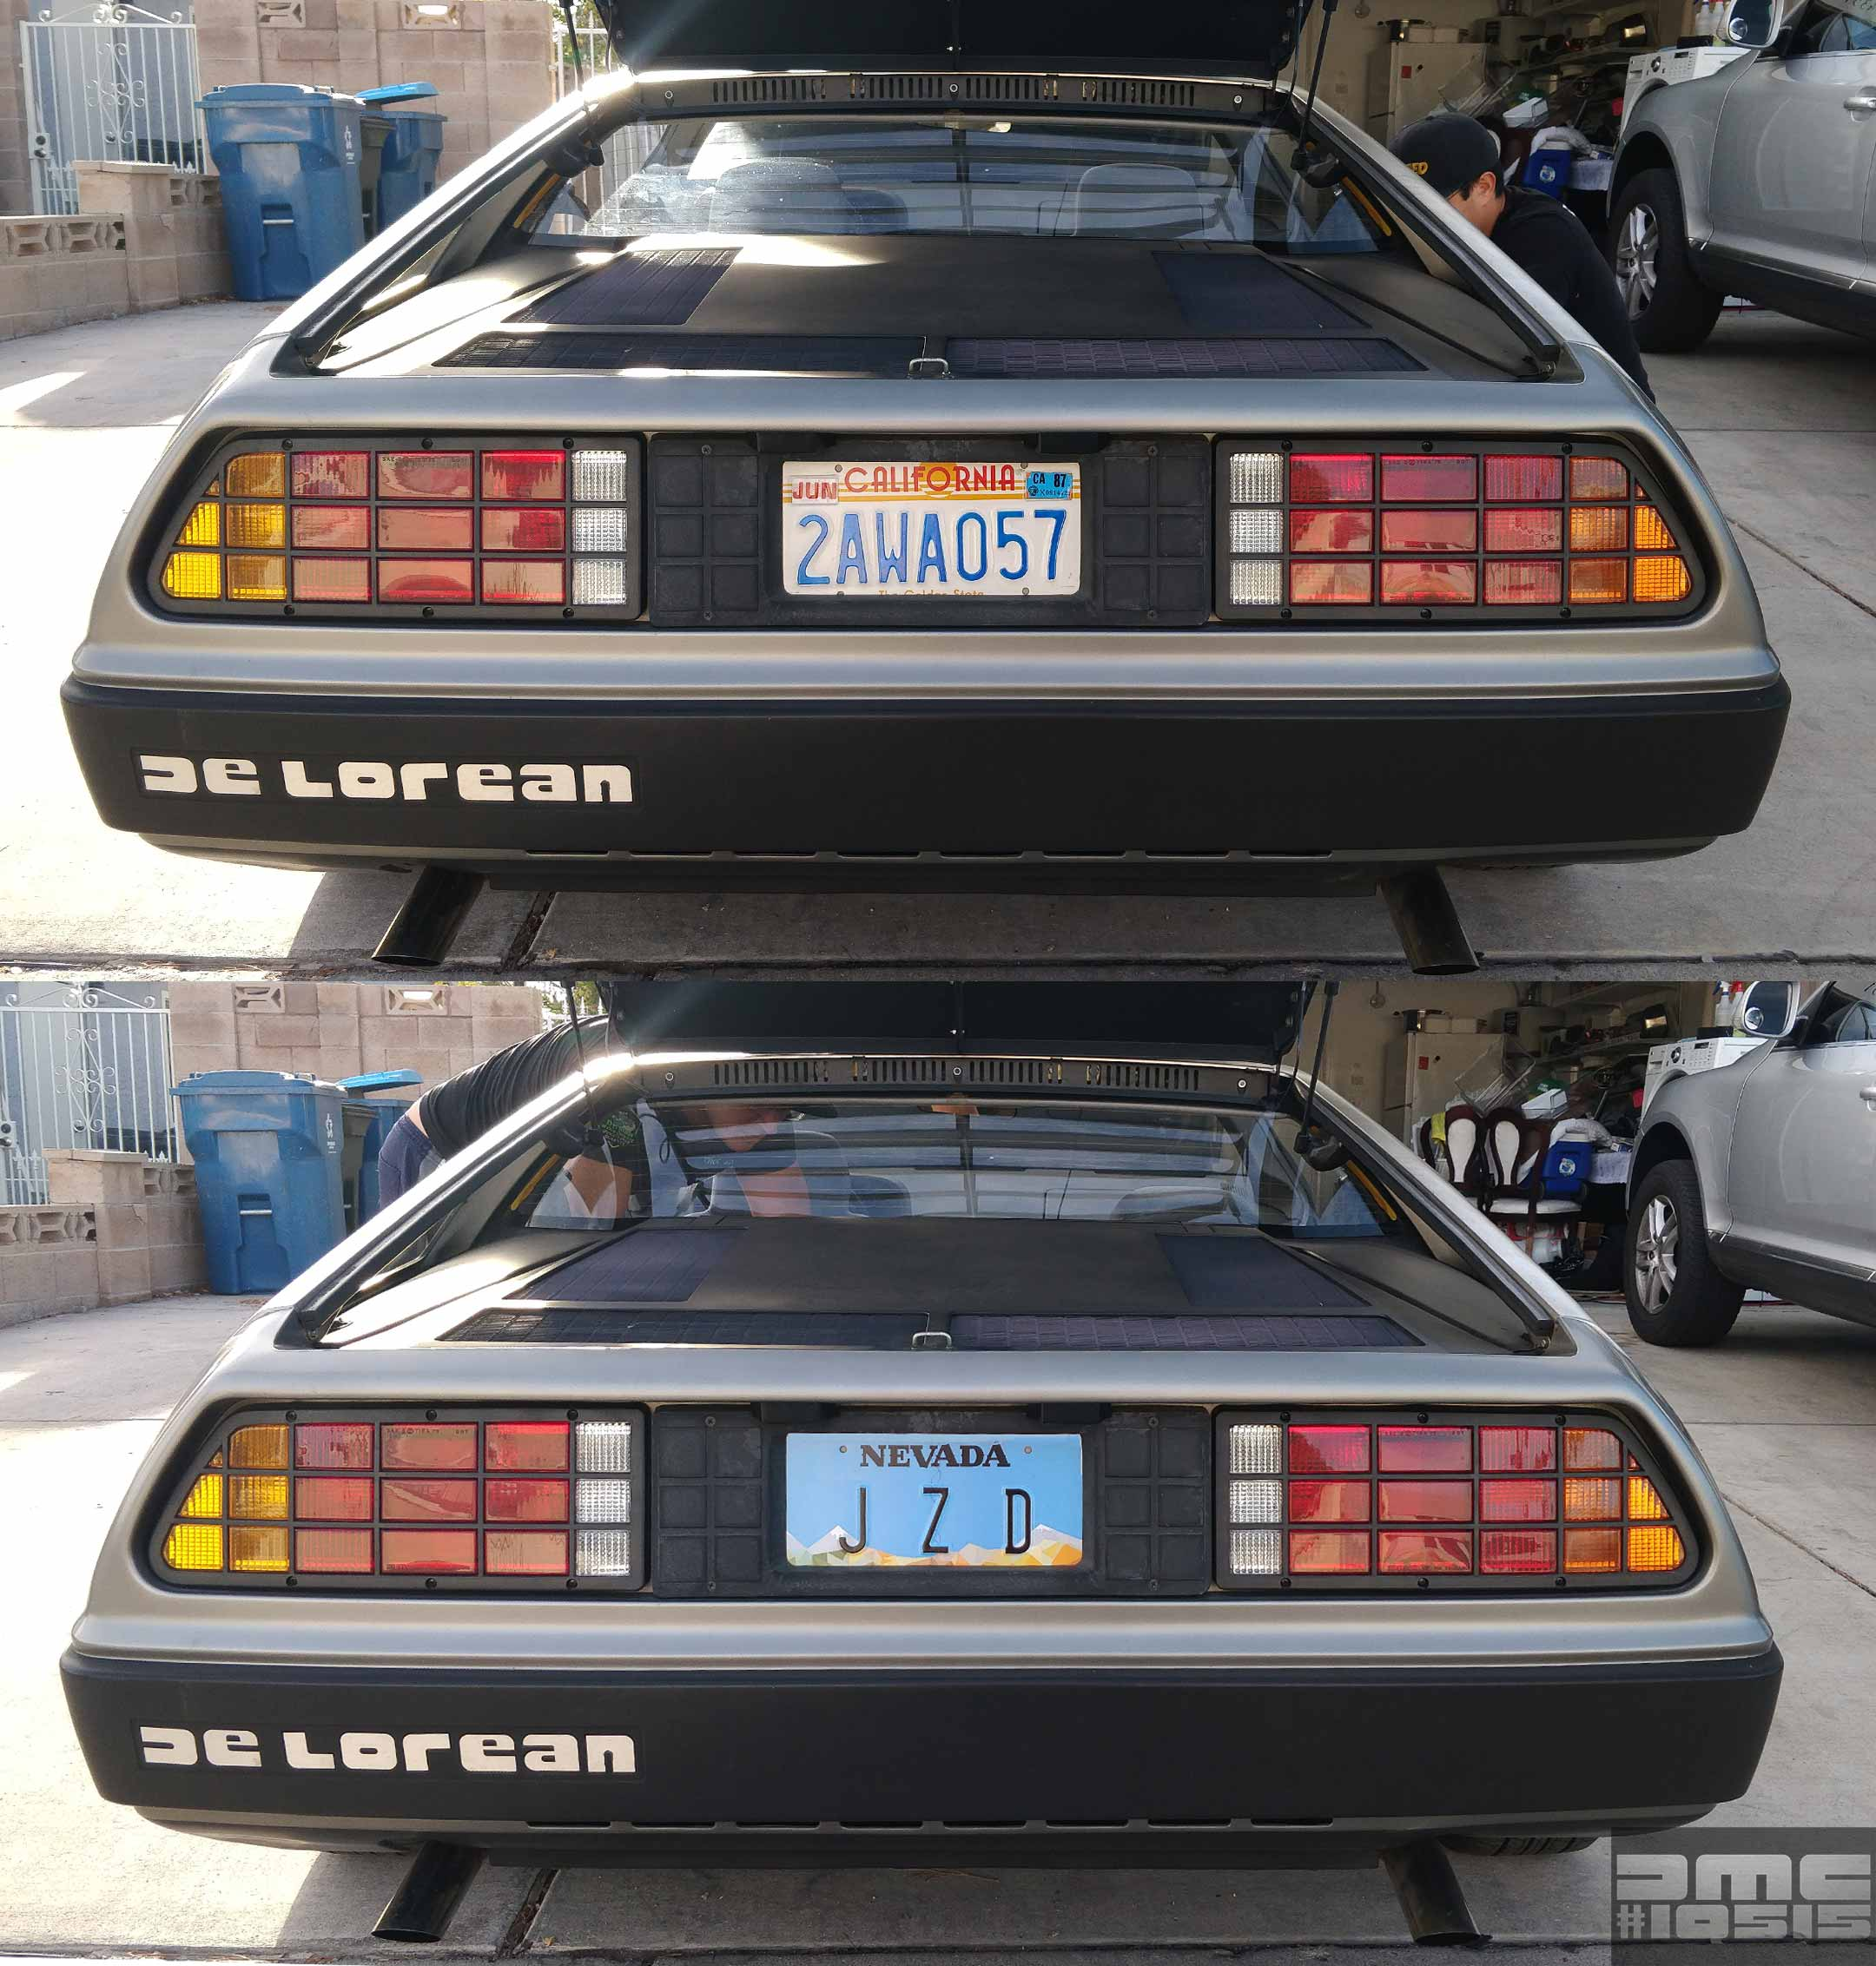 DeLorean 2AWA057 to JZD | DMC10515.com